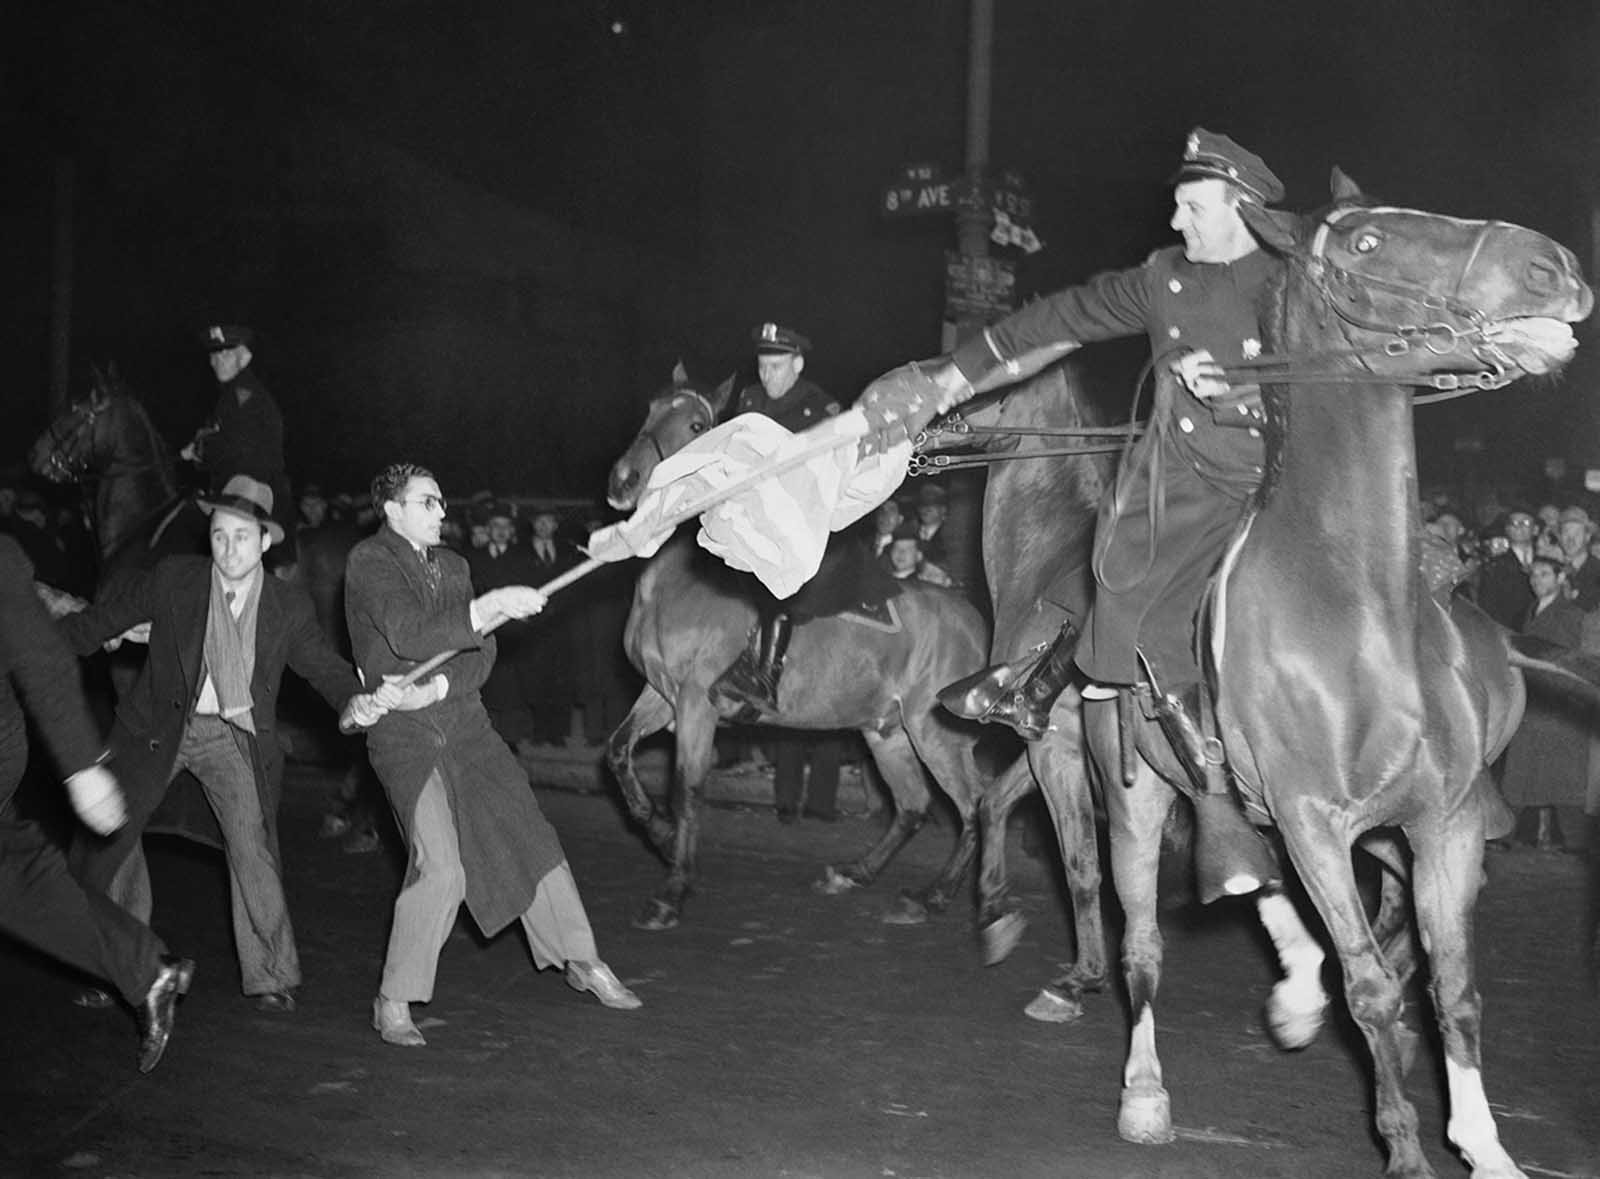 A New York City mounted policeman outside Madison Square Garden at 50th Street and 8th Avenue during a German American Bund meeting, is shown attempting to take an American flag away from one of the demonstrators who marched outside carrying the staff and banner on February 20, 1939.